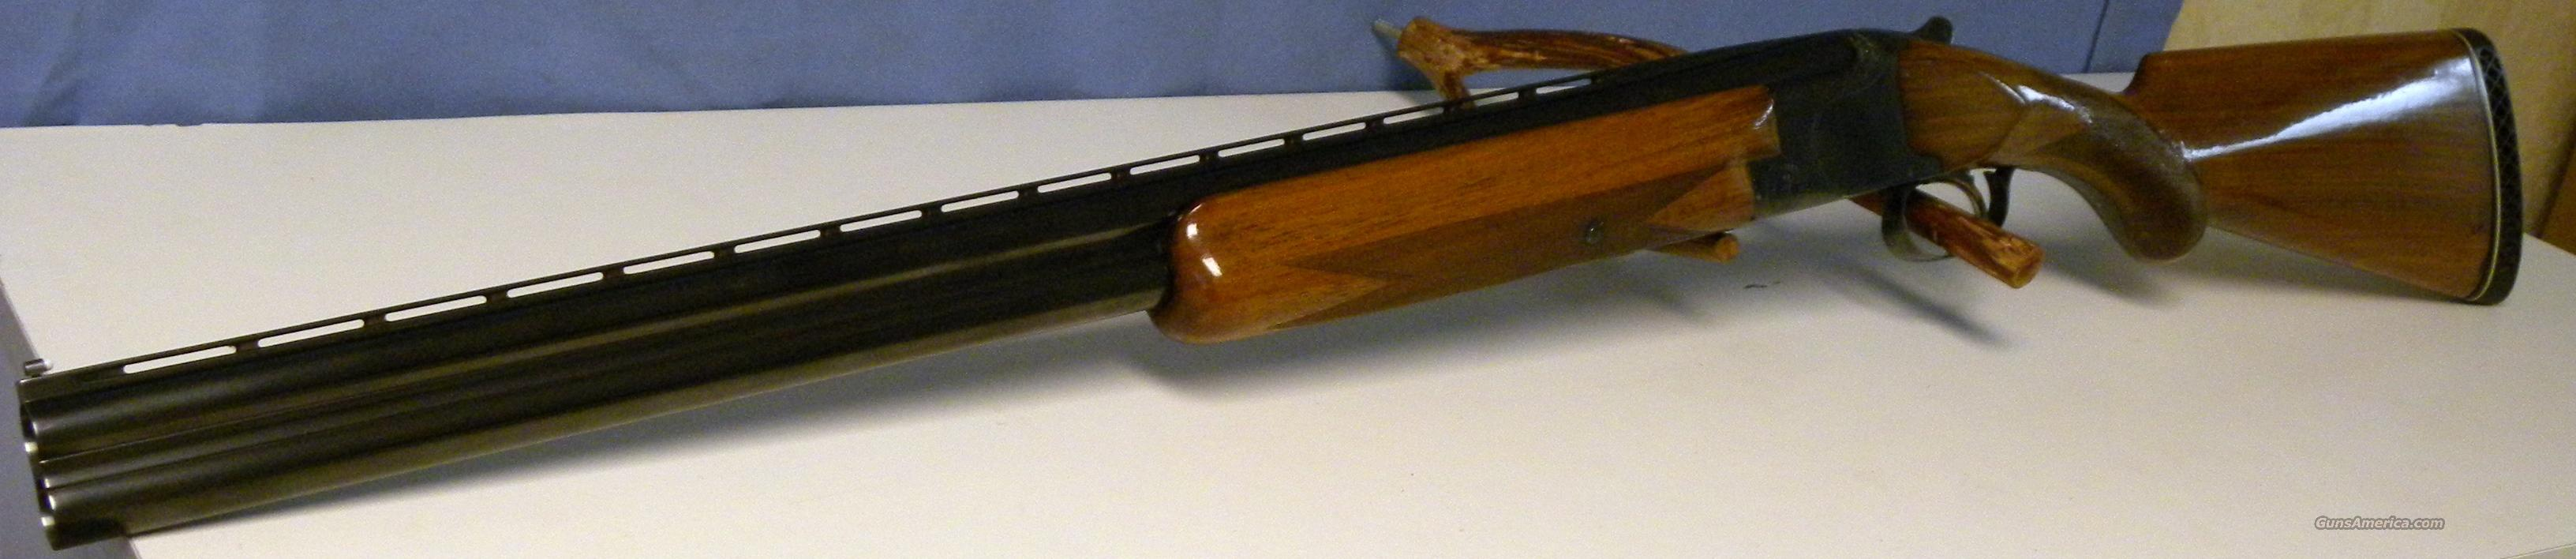 Browning Superposed 1963 12 Ga  Guns > Shotguns > Browning Shotguns > Over Unders > Belgian Manufacture